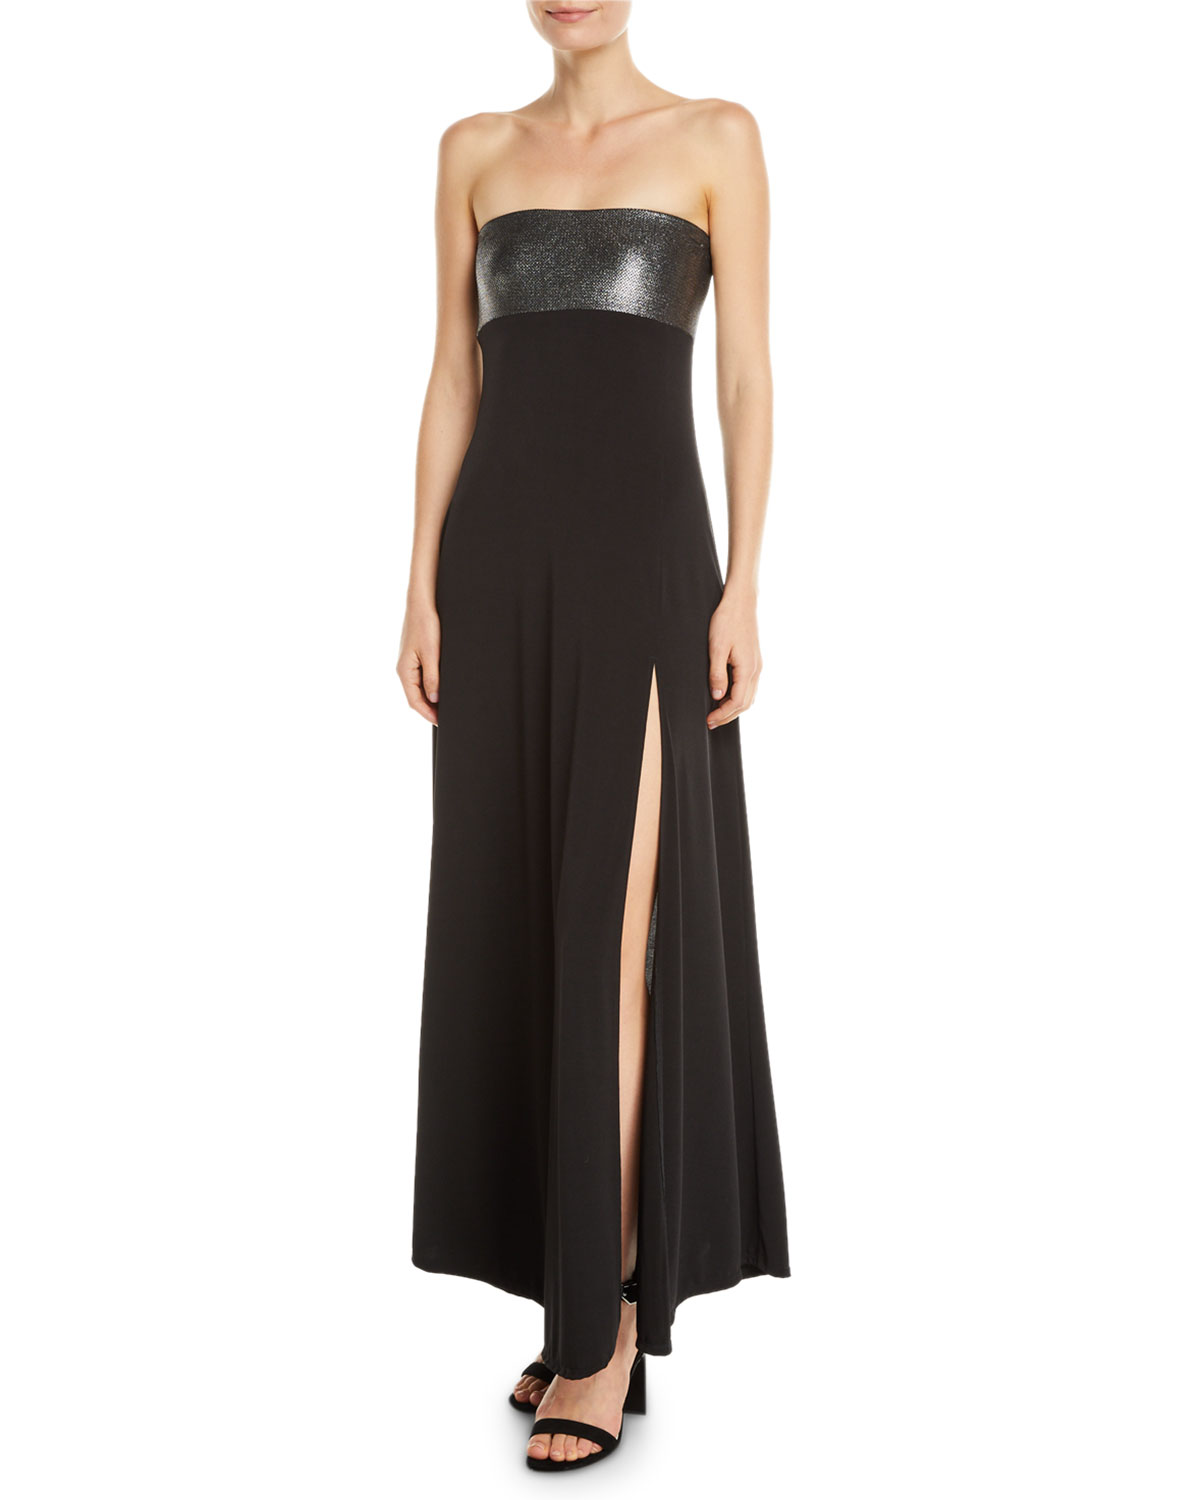 Marie France Van Damme Strapless Metallic Coverup Maxi ...